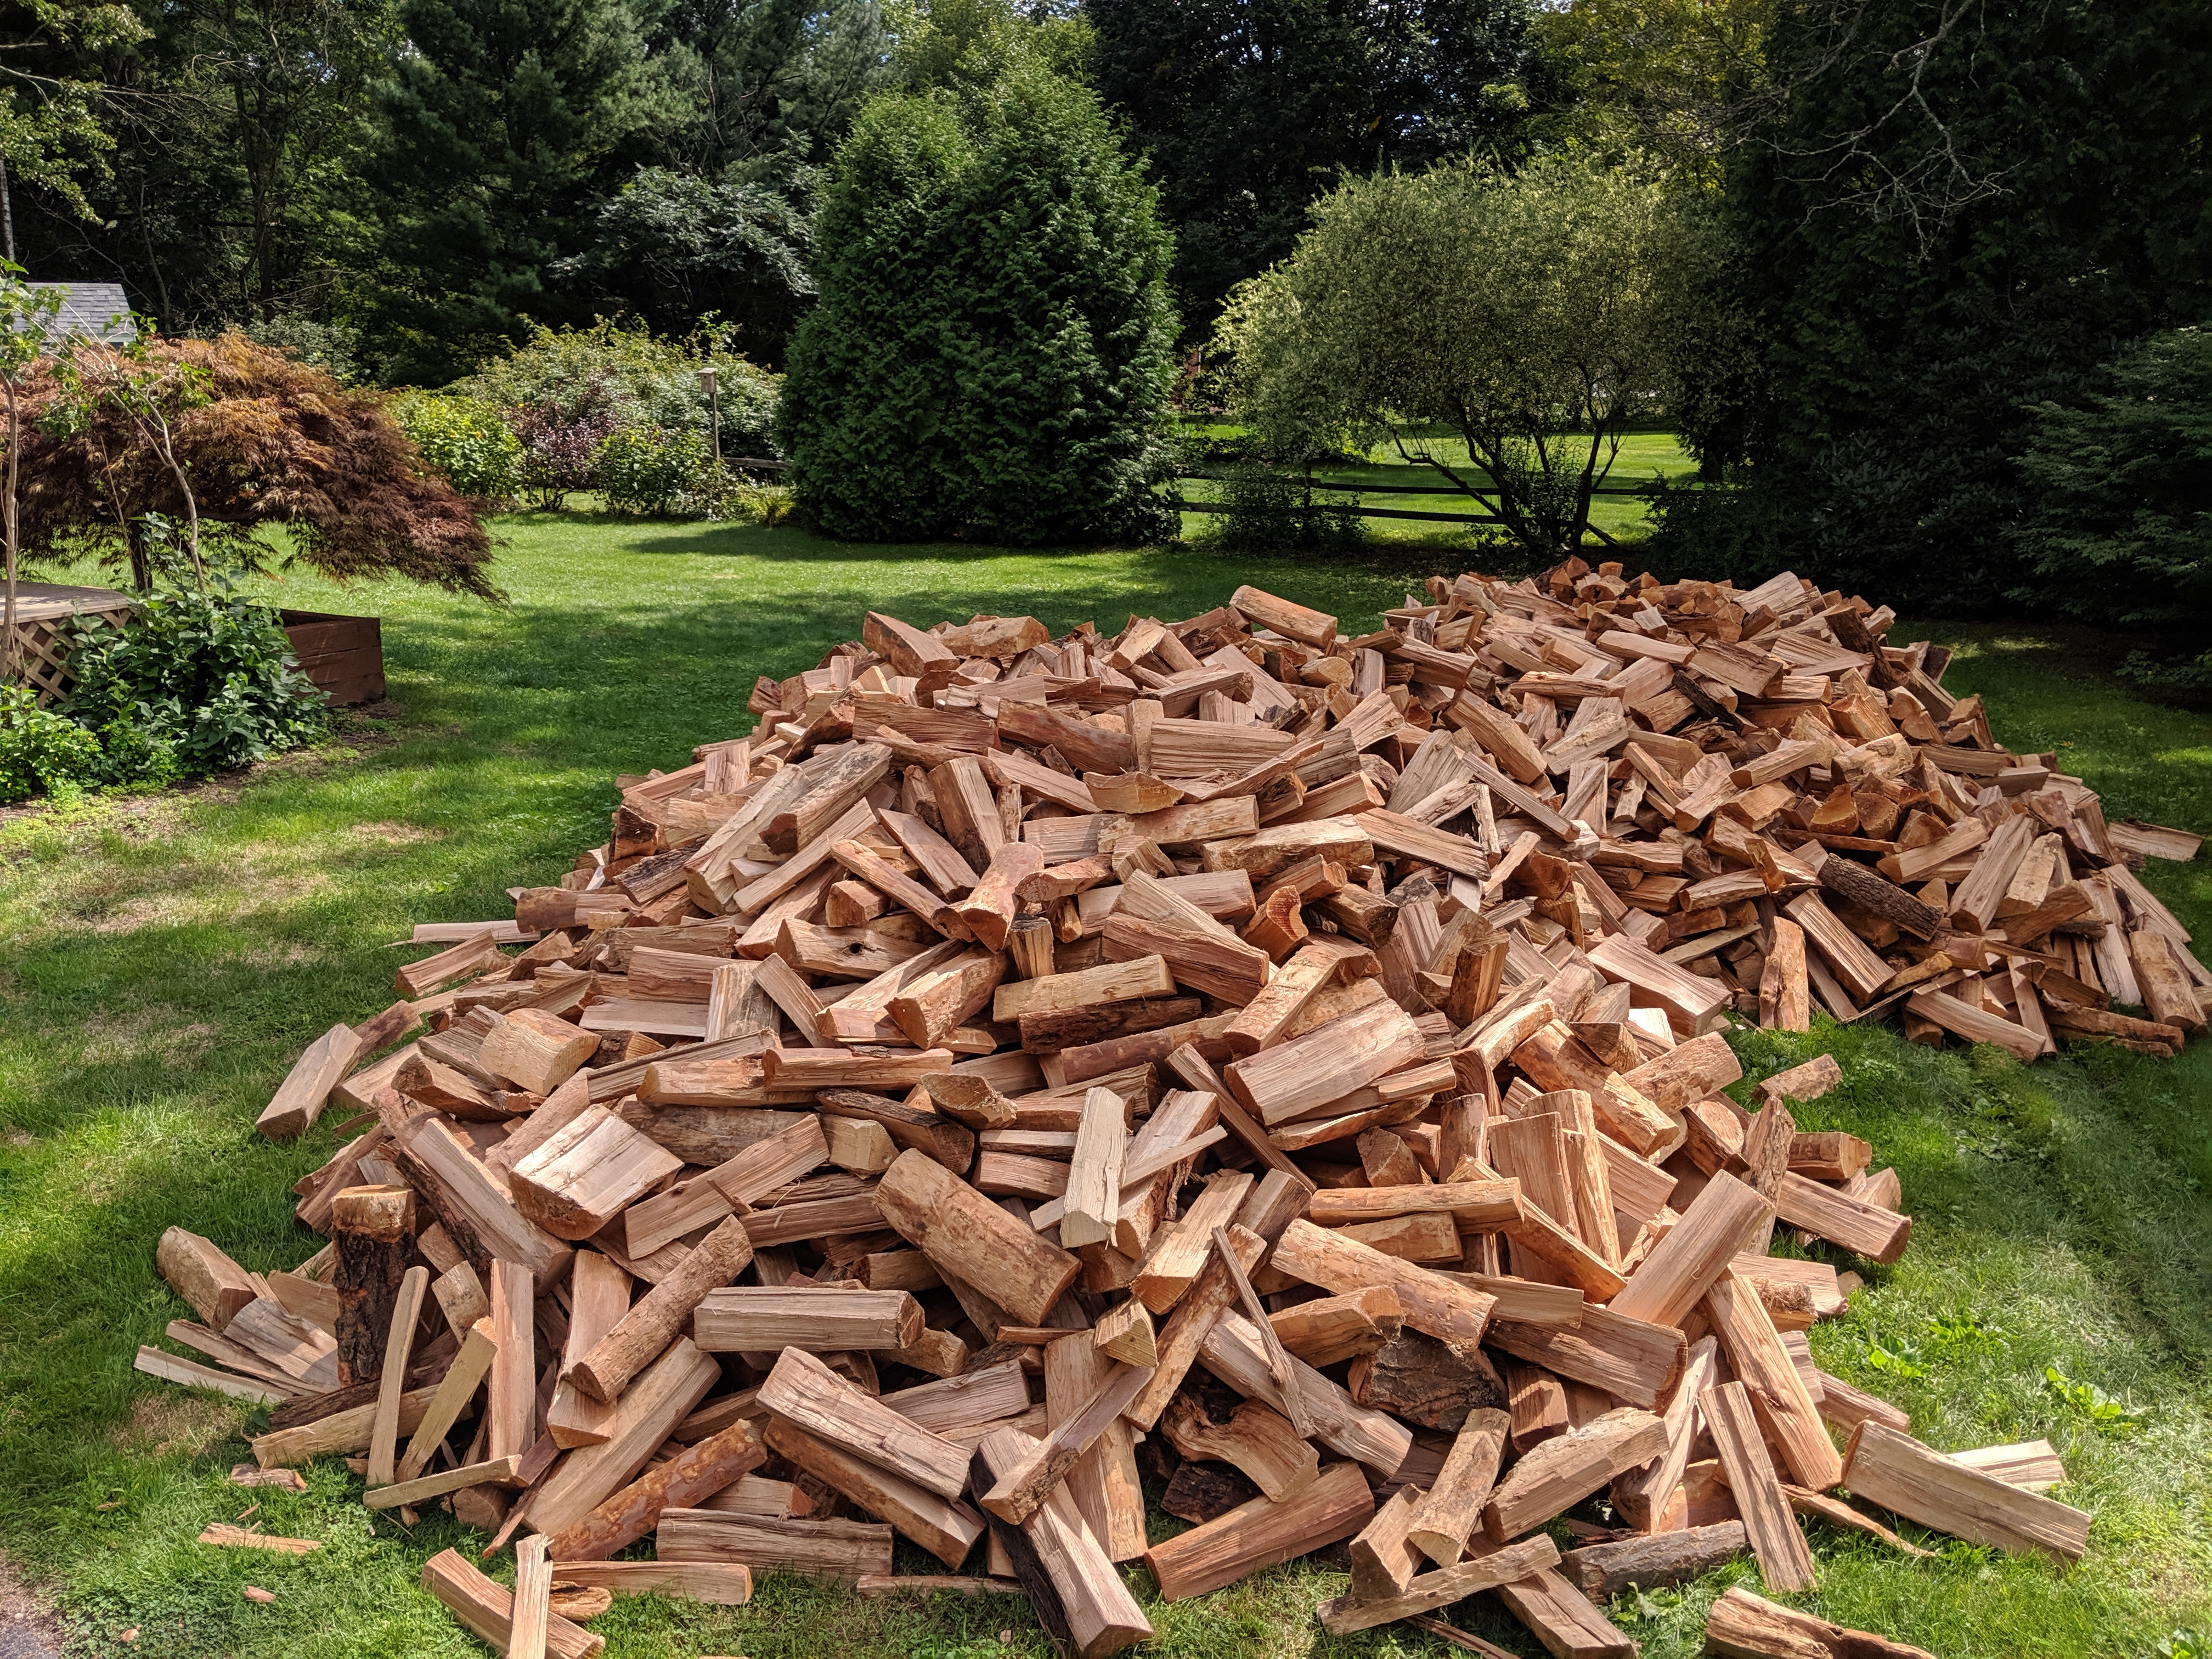 I'd say we have enough wood...